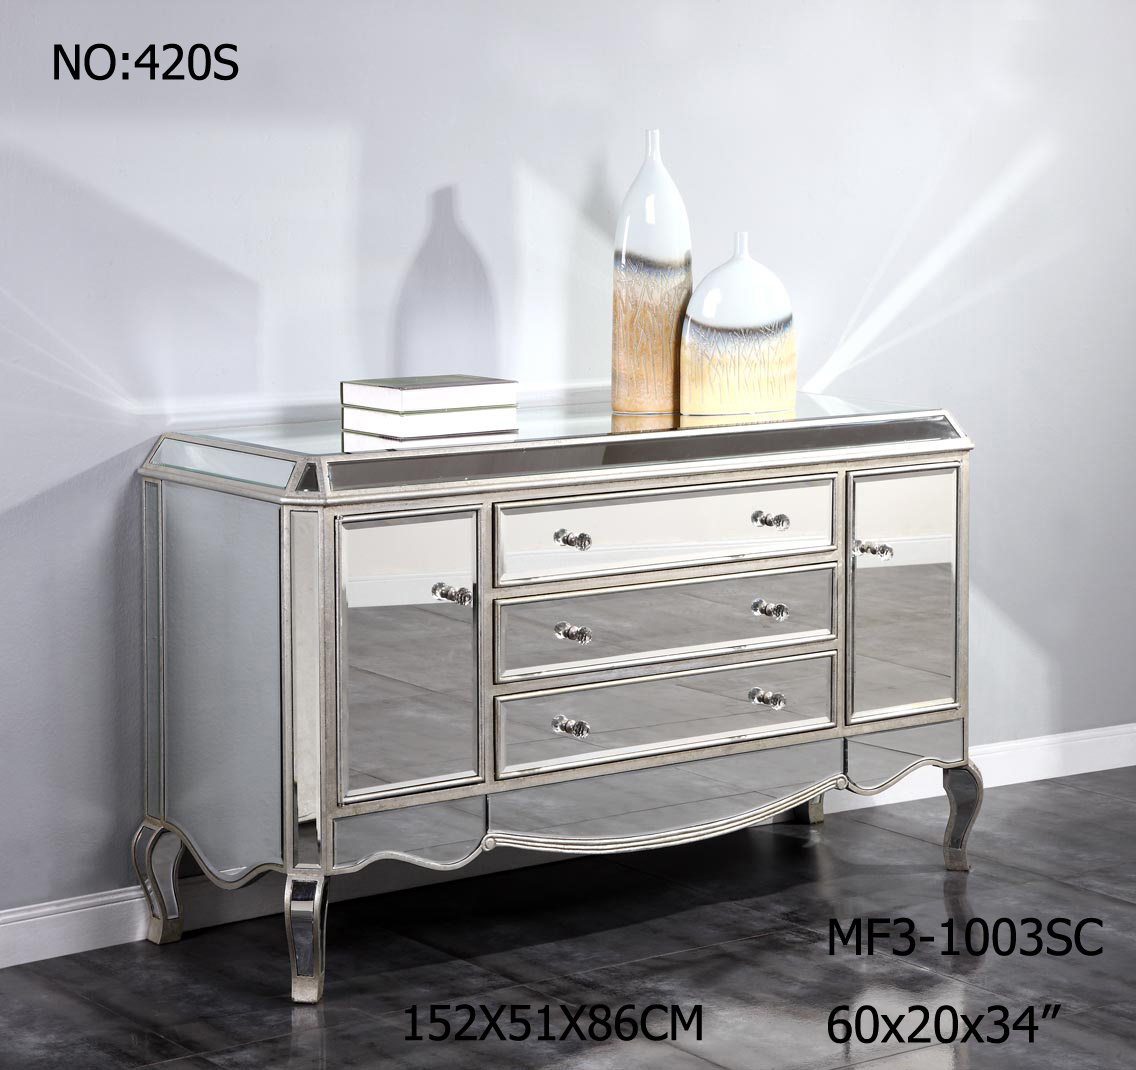 Big Storage Customized Mirrored Dresser for Bedroom